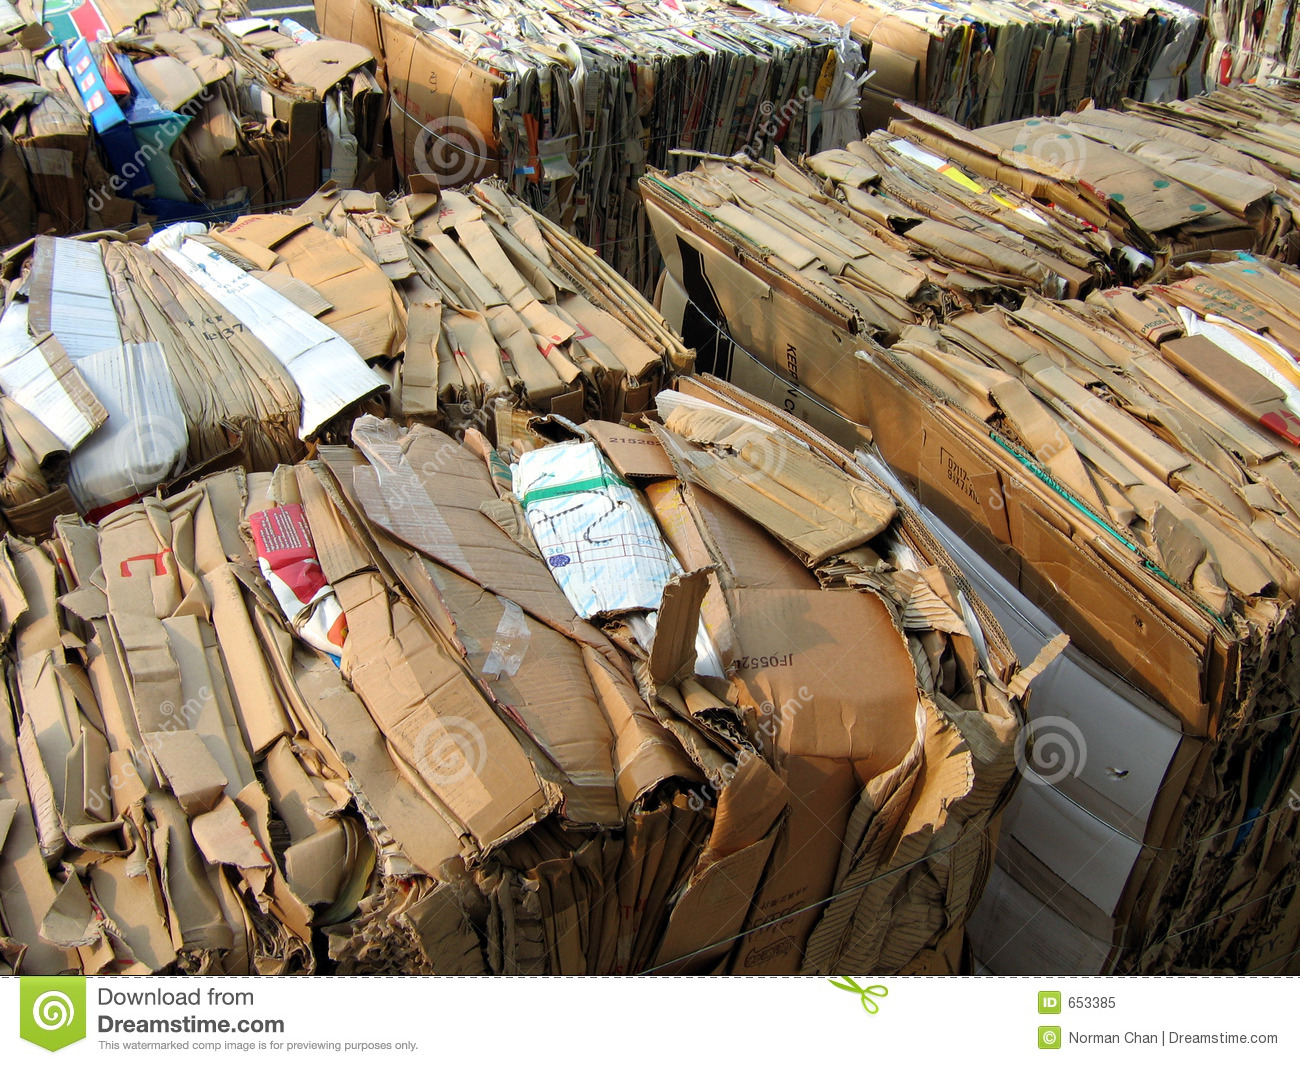 recycle essay title Rs - reduce, reuse, and recycle  lesson, please sent an email to recycle@savemobileorg to let us know so we can  title: microsoft word - the3rsdocx.